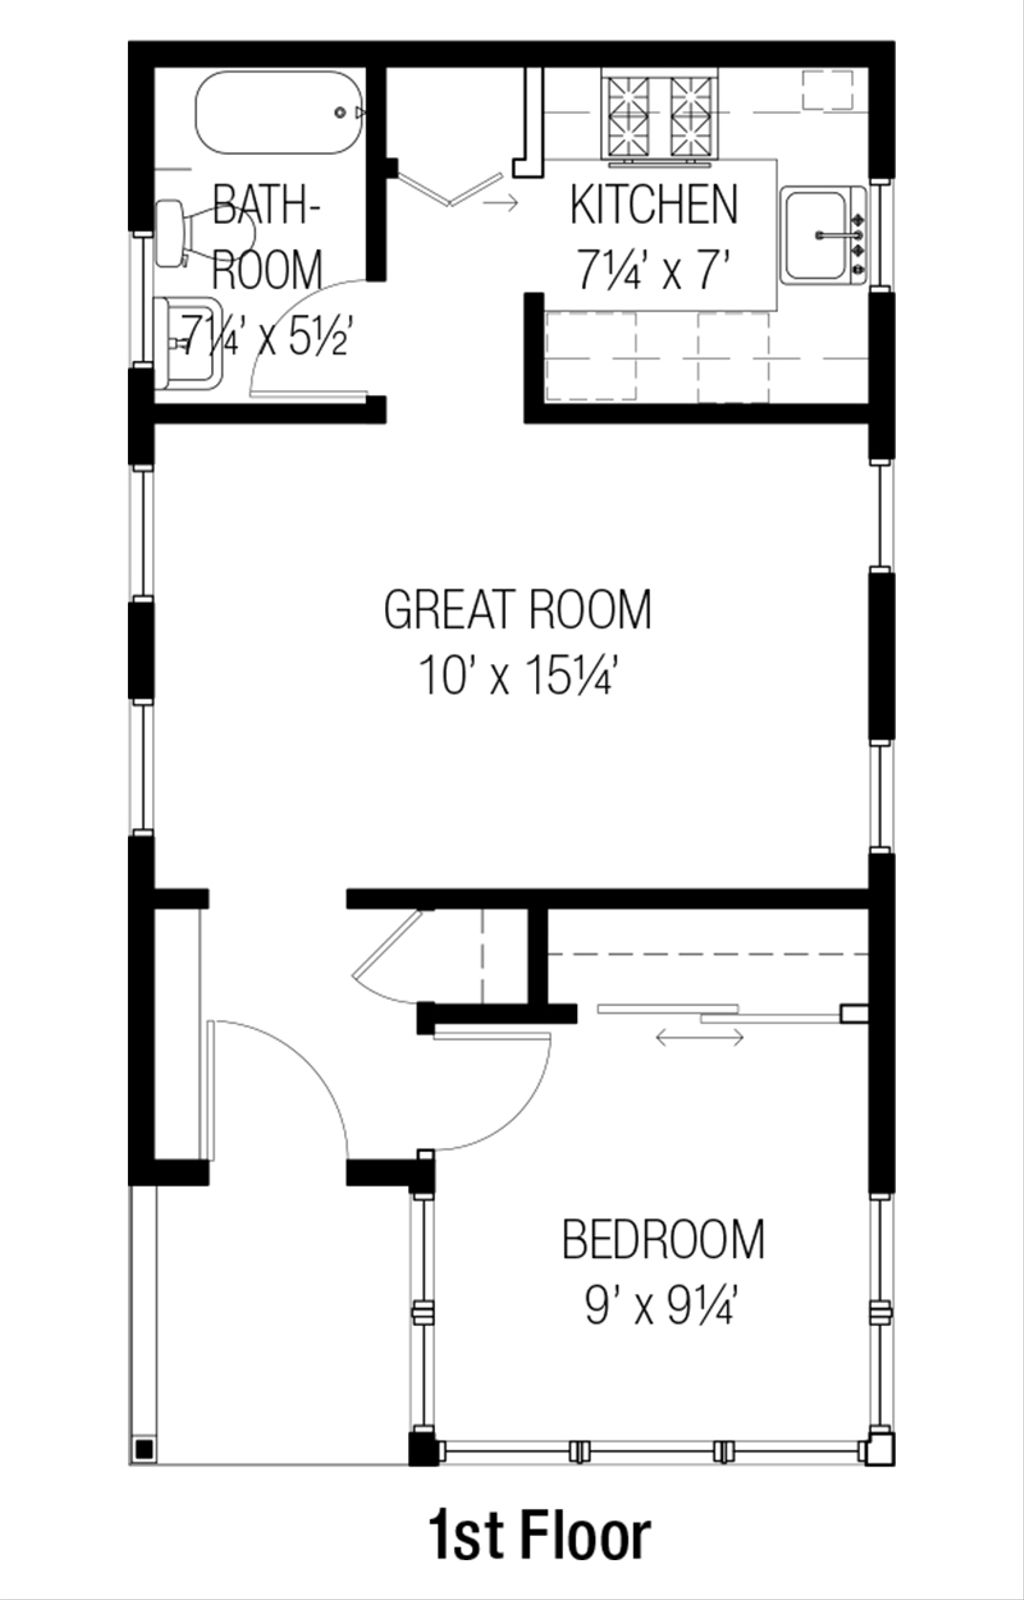 Cottage Style House Plan 1 Beds 1 Baths 461 Sq Ft Plan